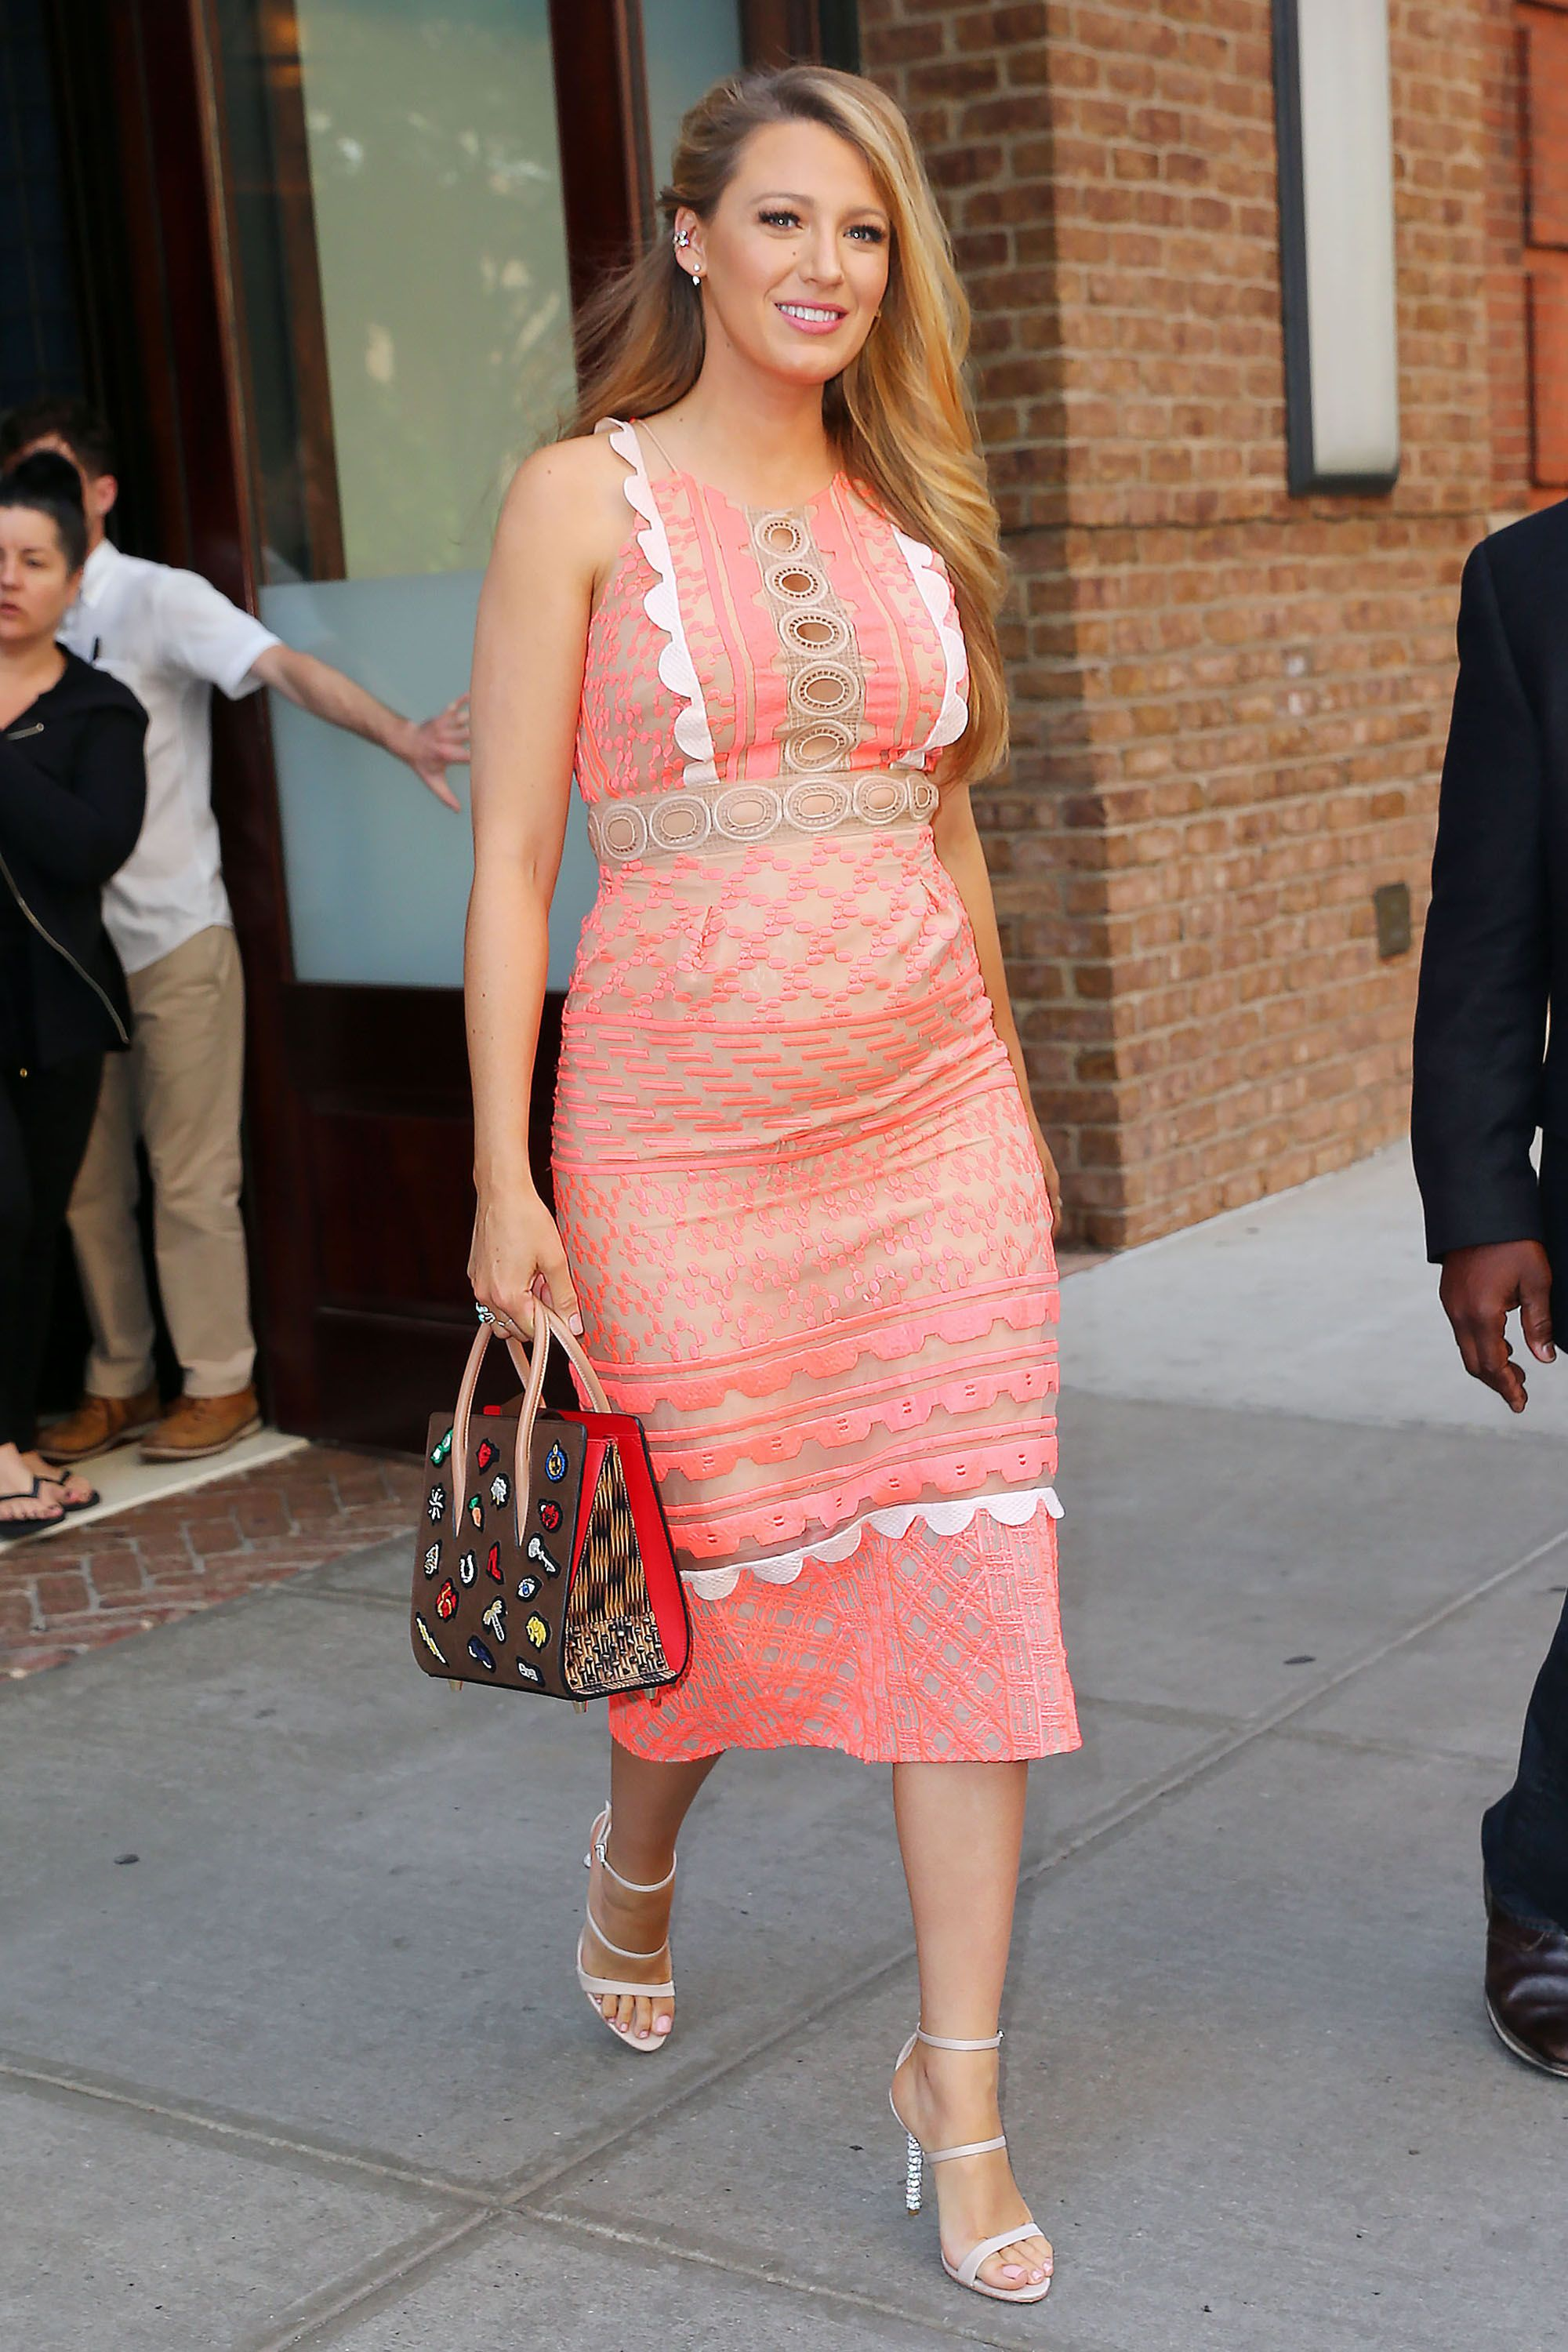 Blake Lively Pregnancy Style - Blake Lively Fashion